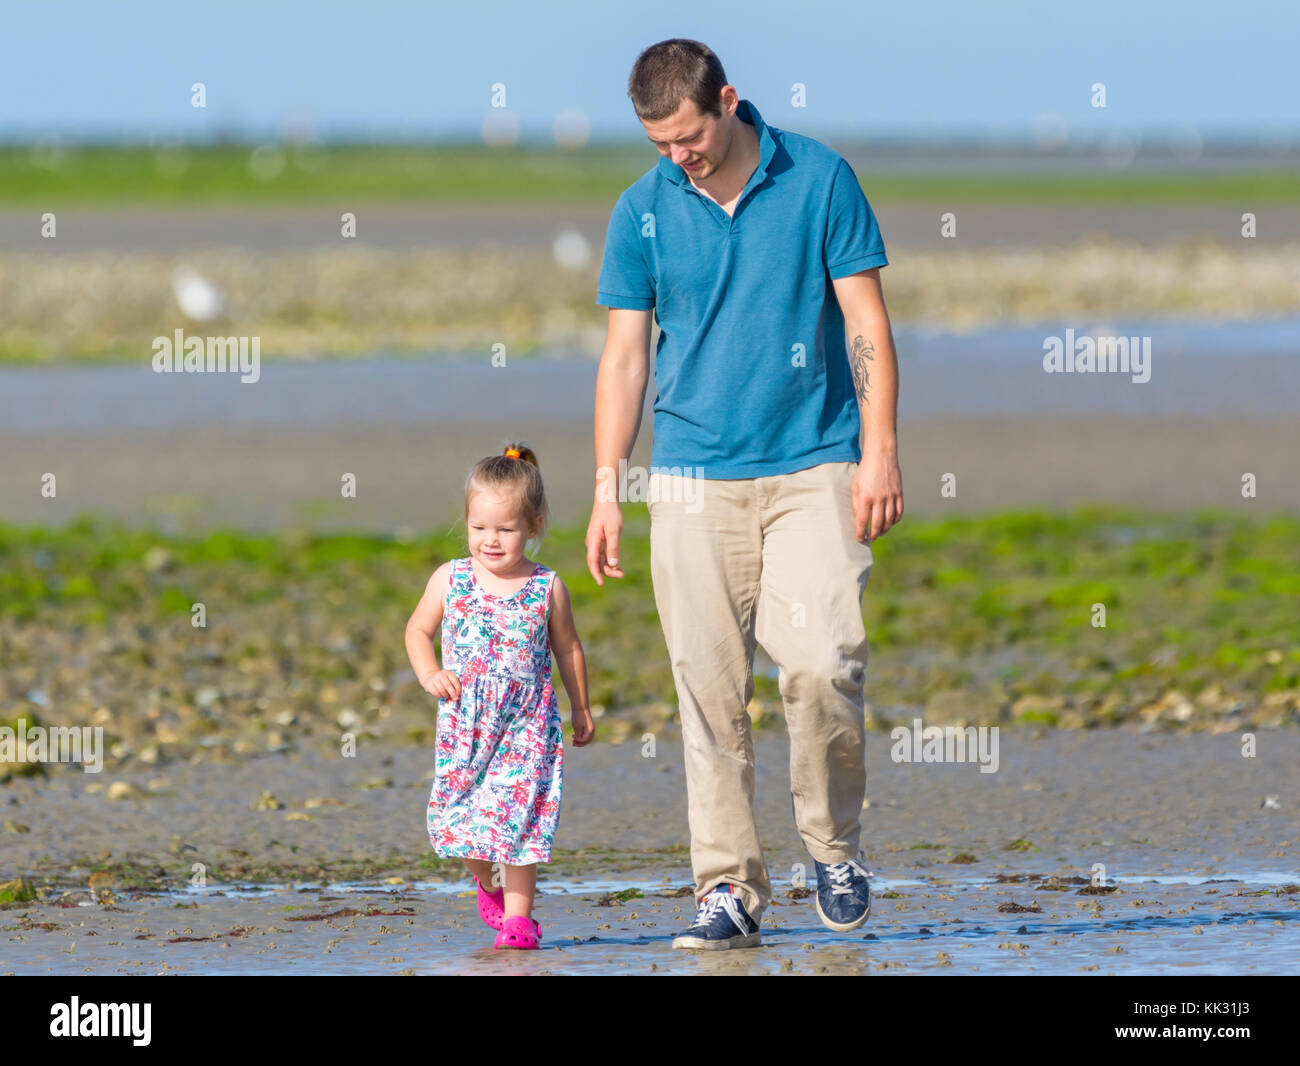 Young girl walking with a man on a beach. - Stock Image